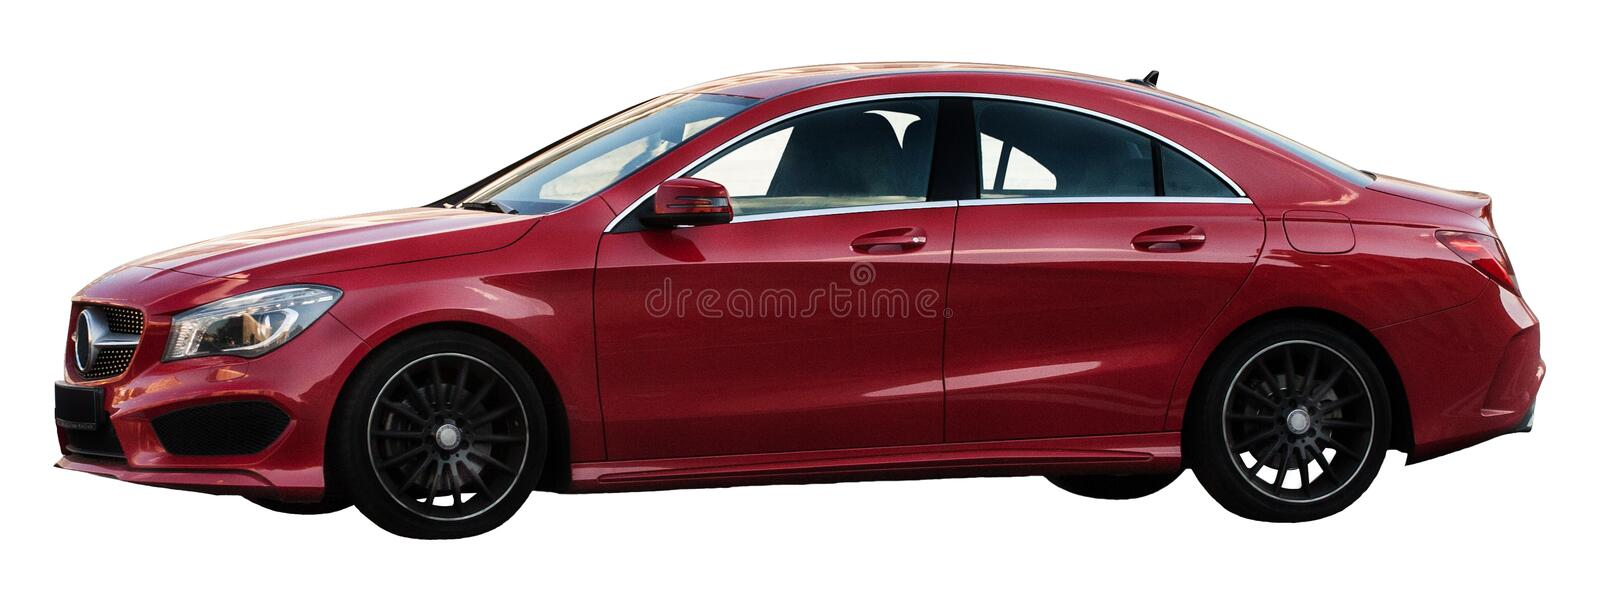 Red Mercedes-Benz on a transparent background royalty free stock photos